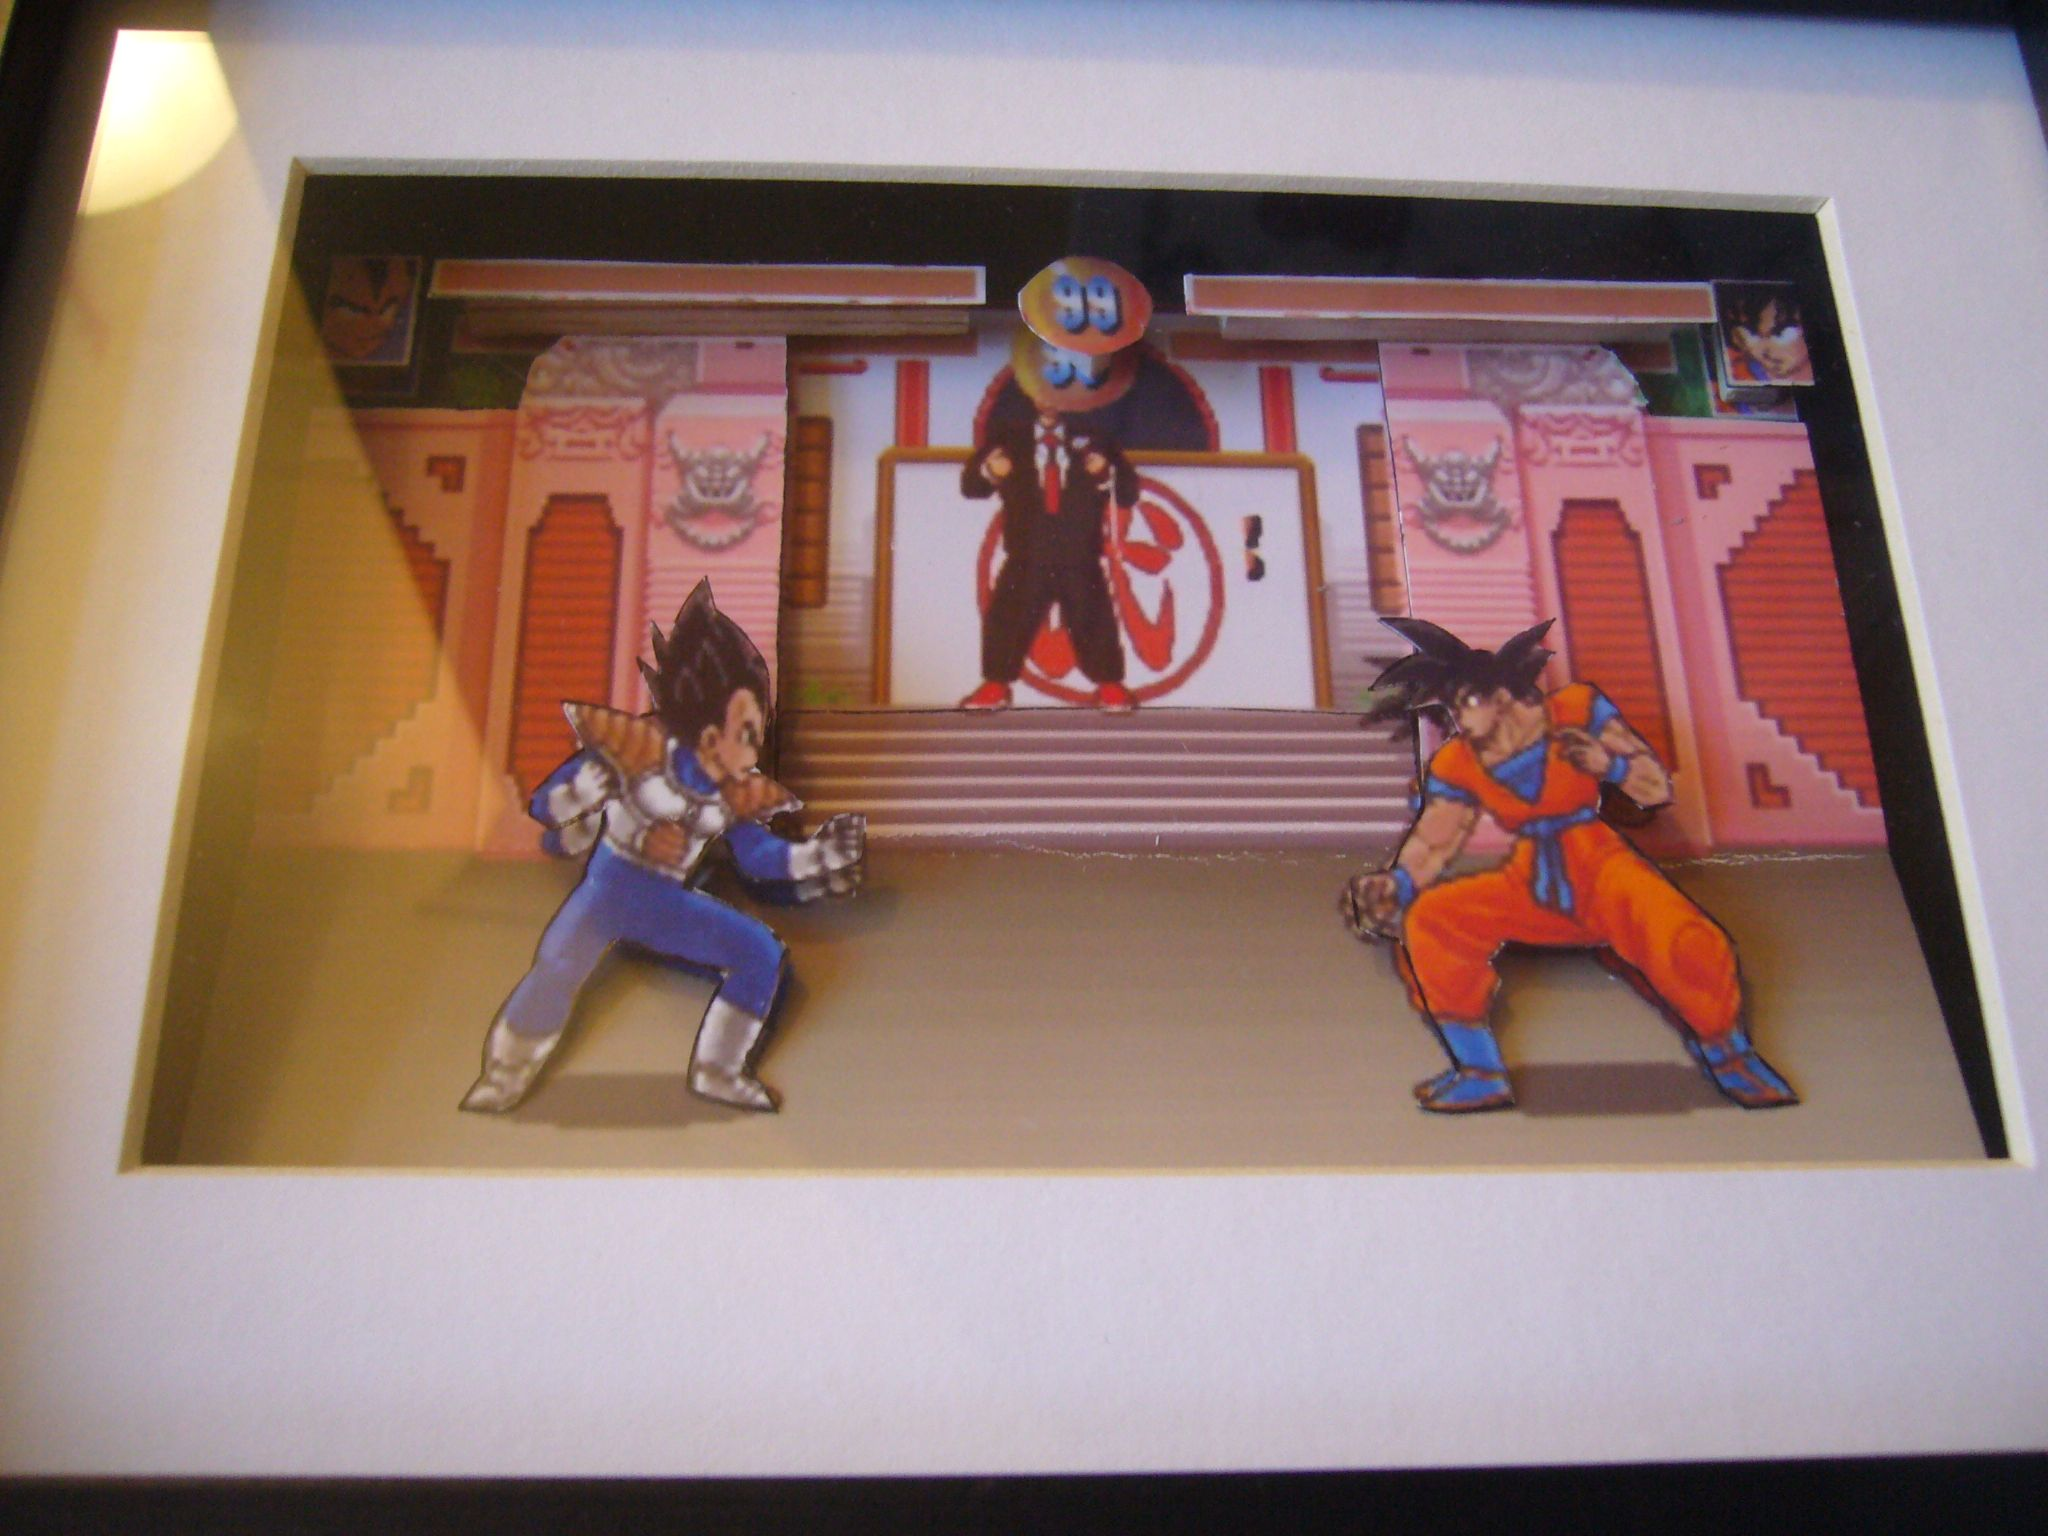 Kitchen Diorama Made Of Cereal Box: Dragon Ball Z 3D Diorama Shadow Box